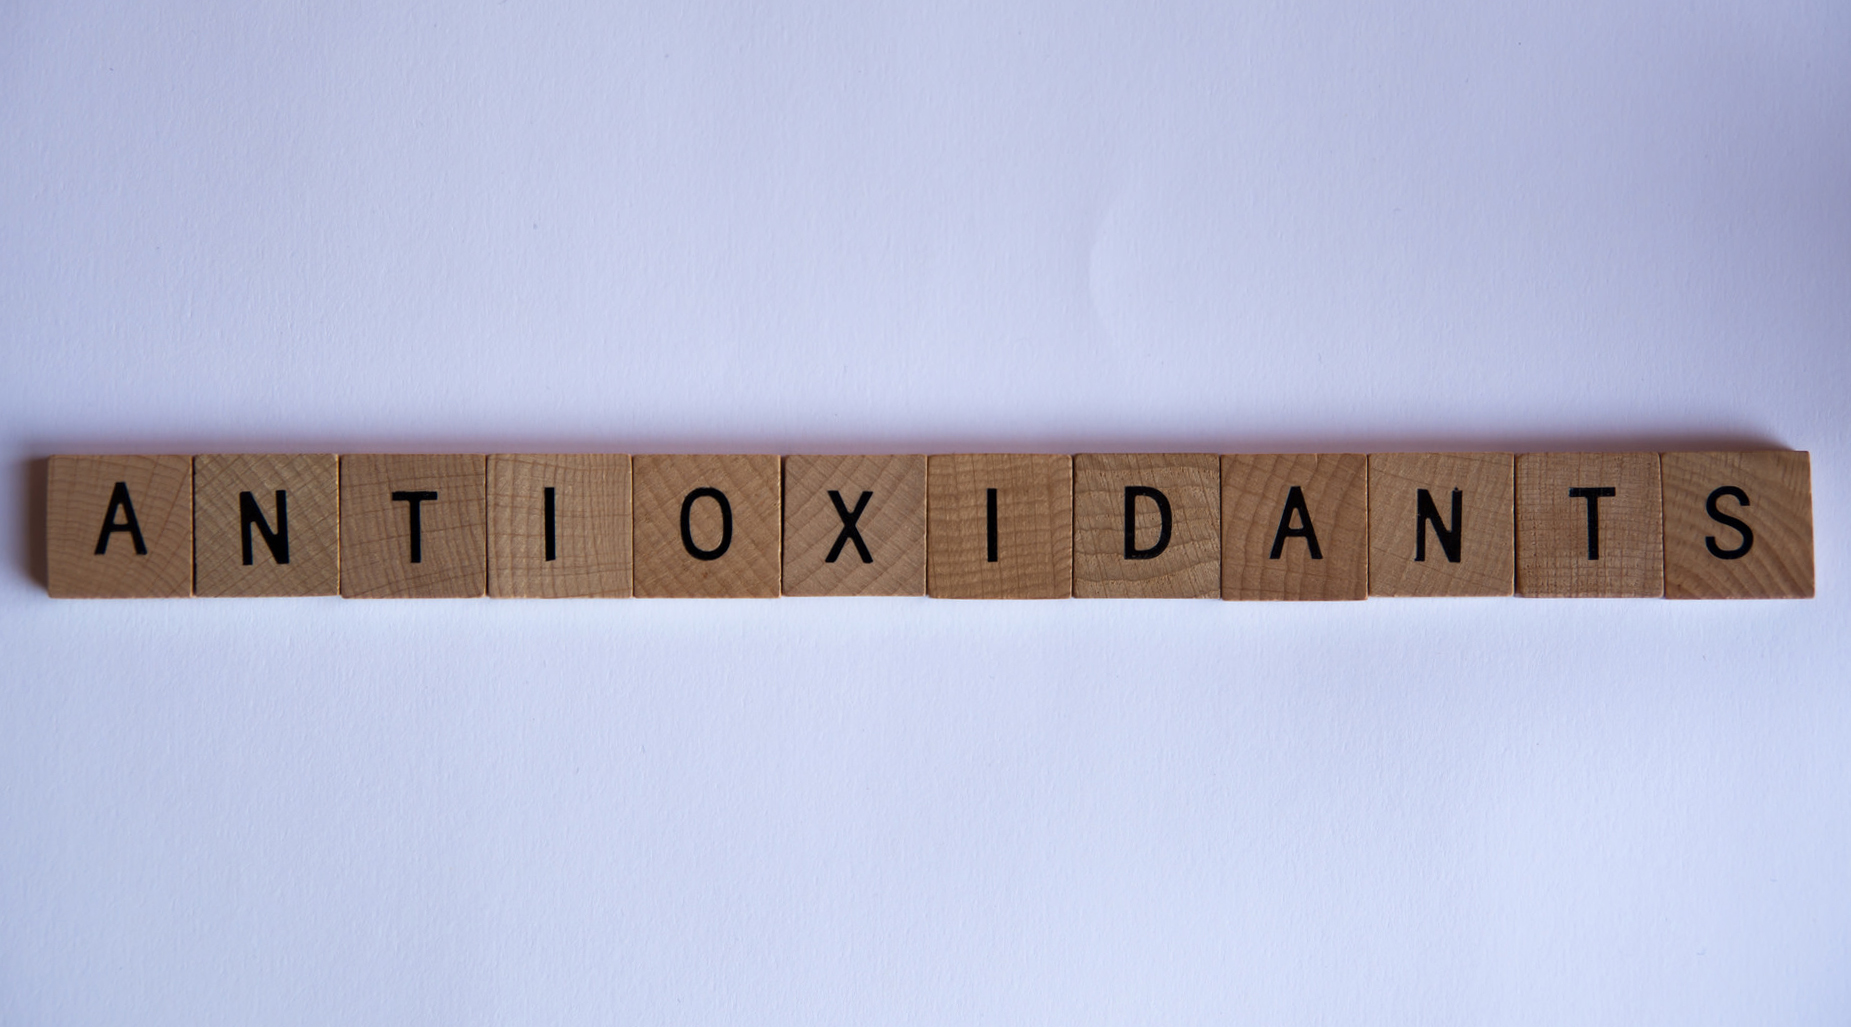 antioxidants-scrabble_cropped